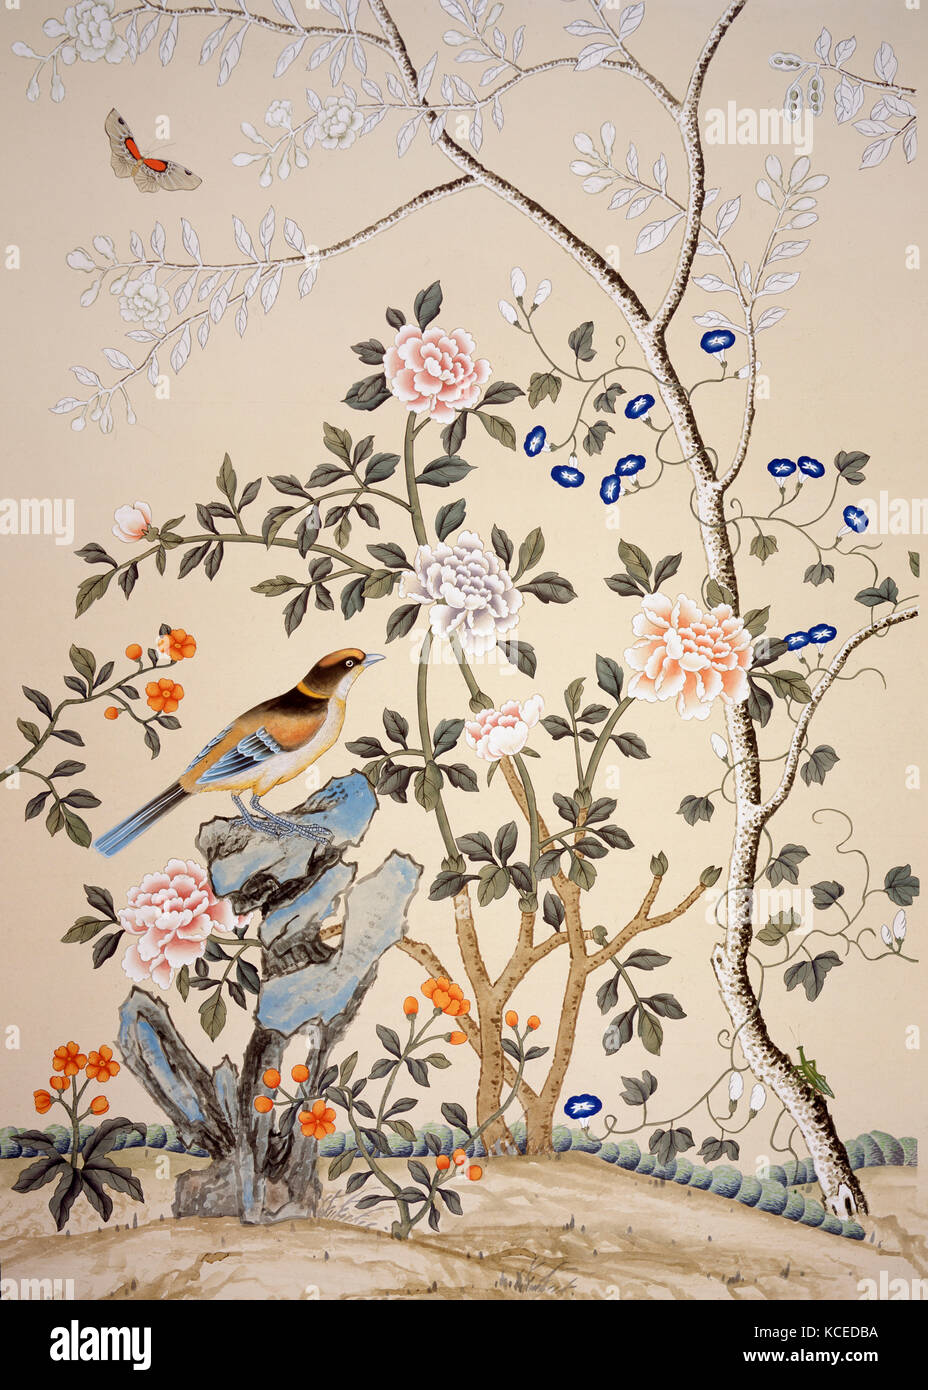 Chinoiserie Wallpaper Stock Photos Chinoiserie Wallpaper Stock